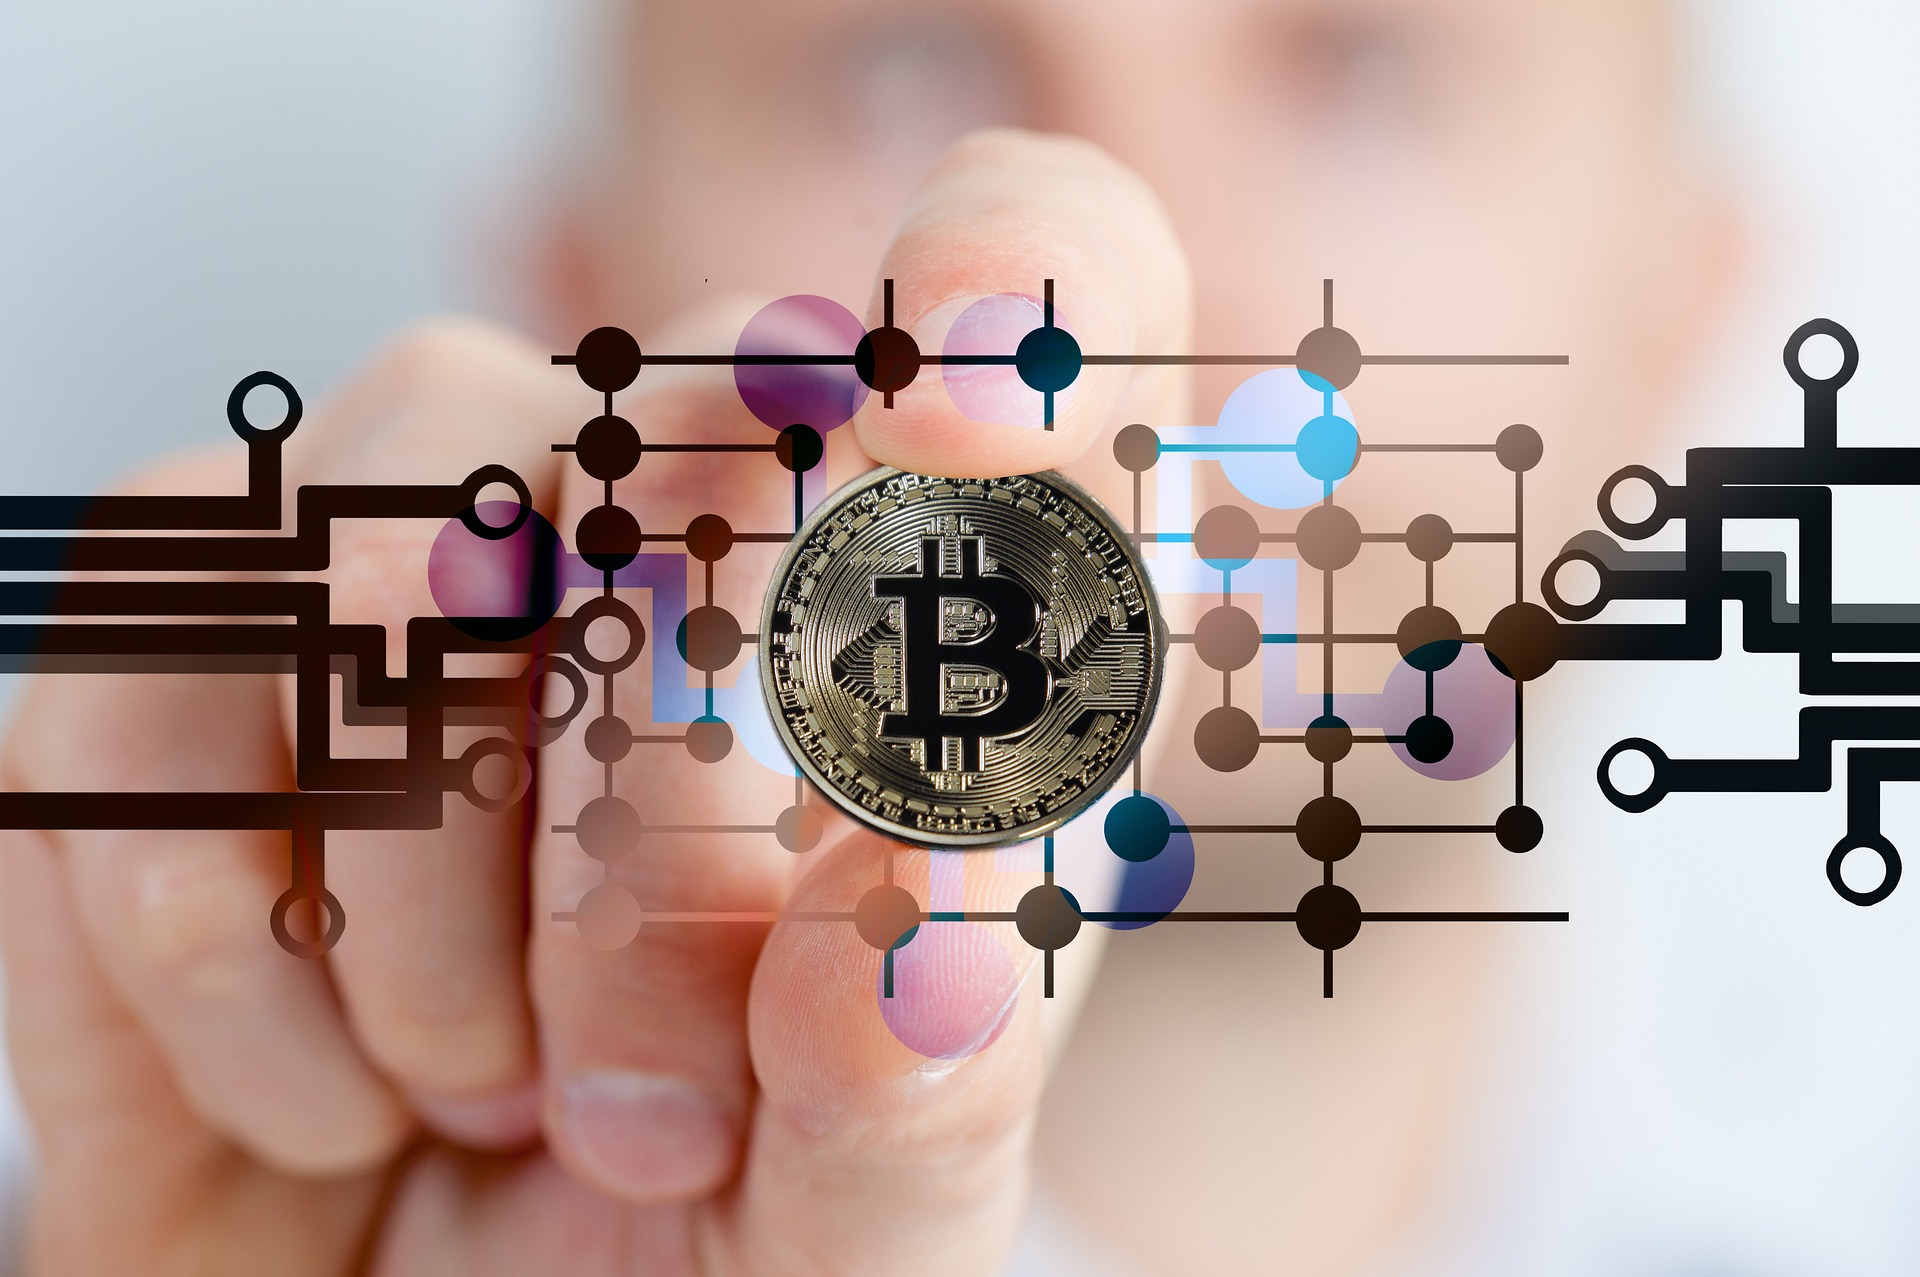 The 10 Forces that Influence Bitcoin and Other Cryptocurrencies